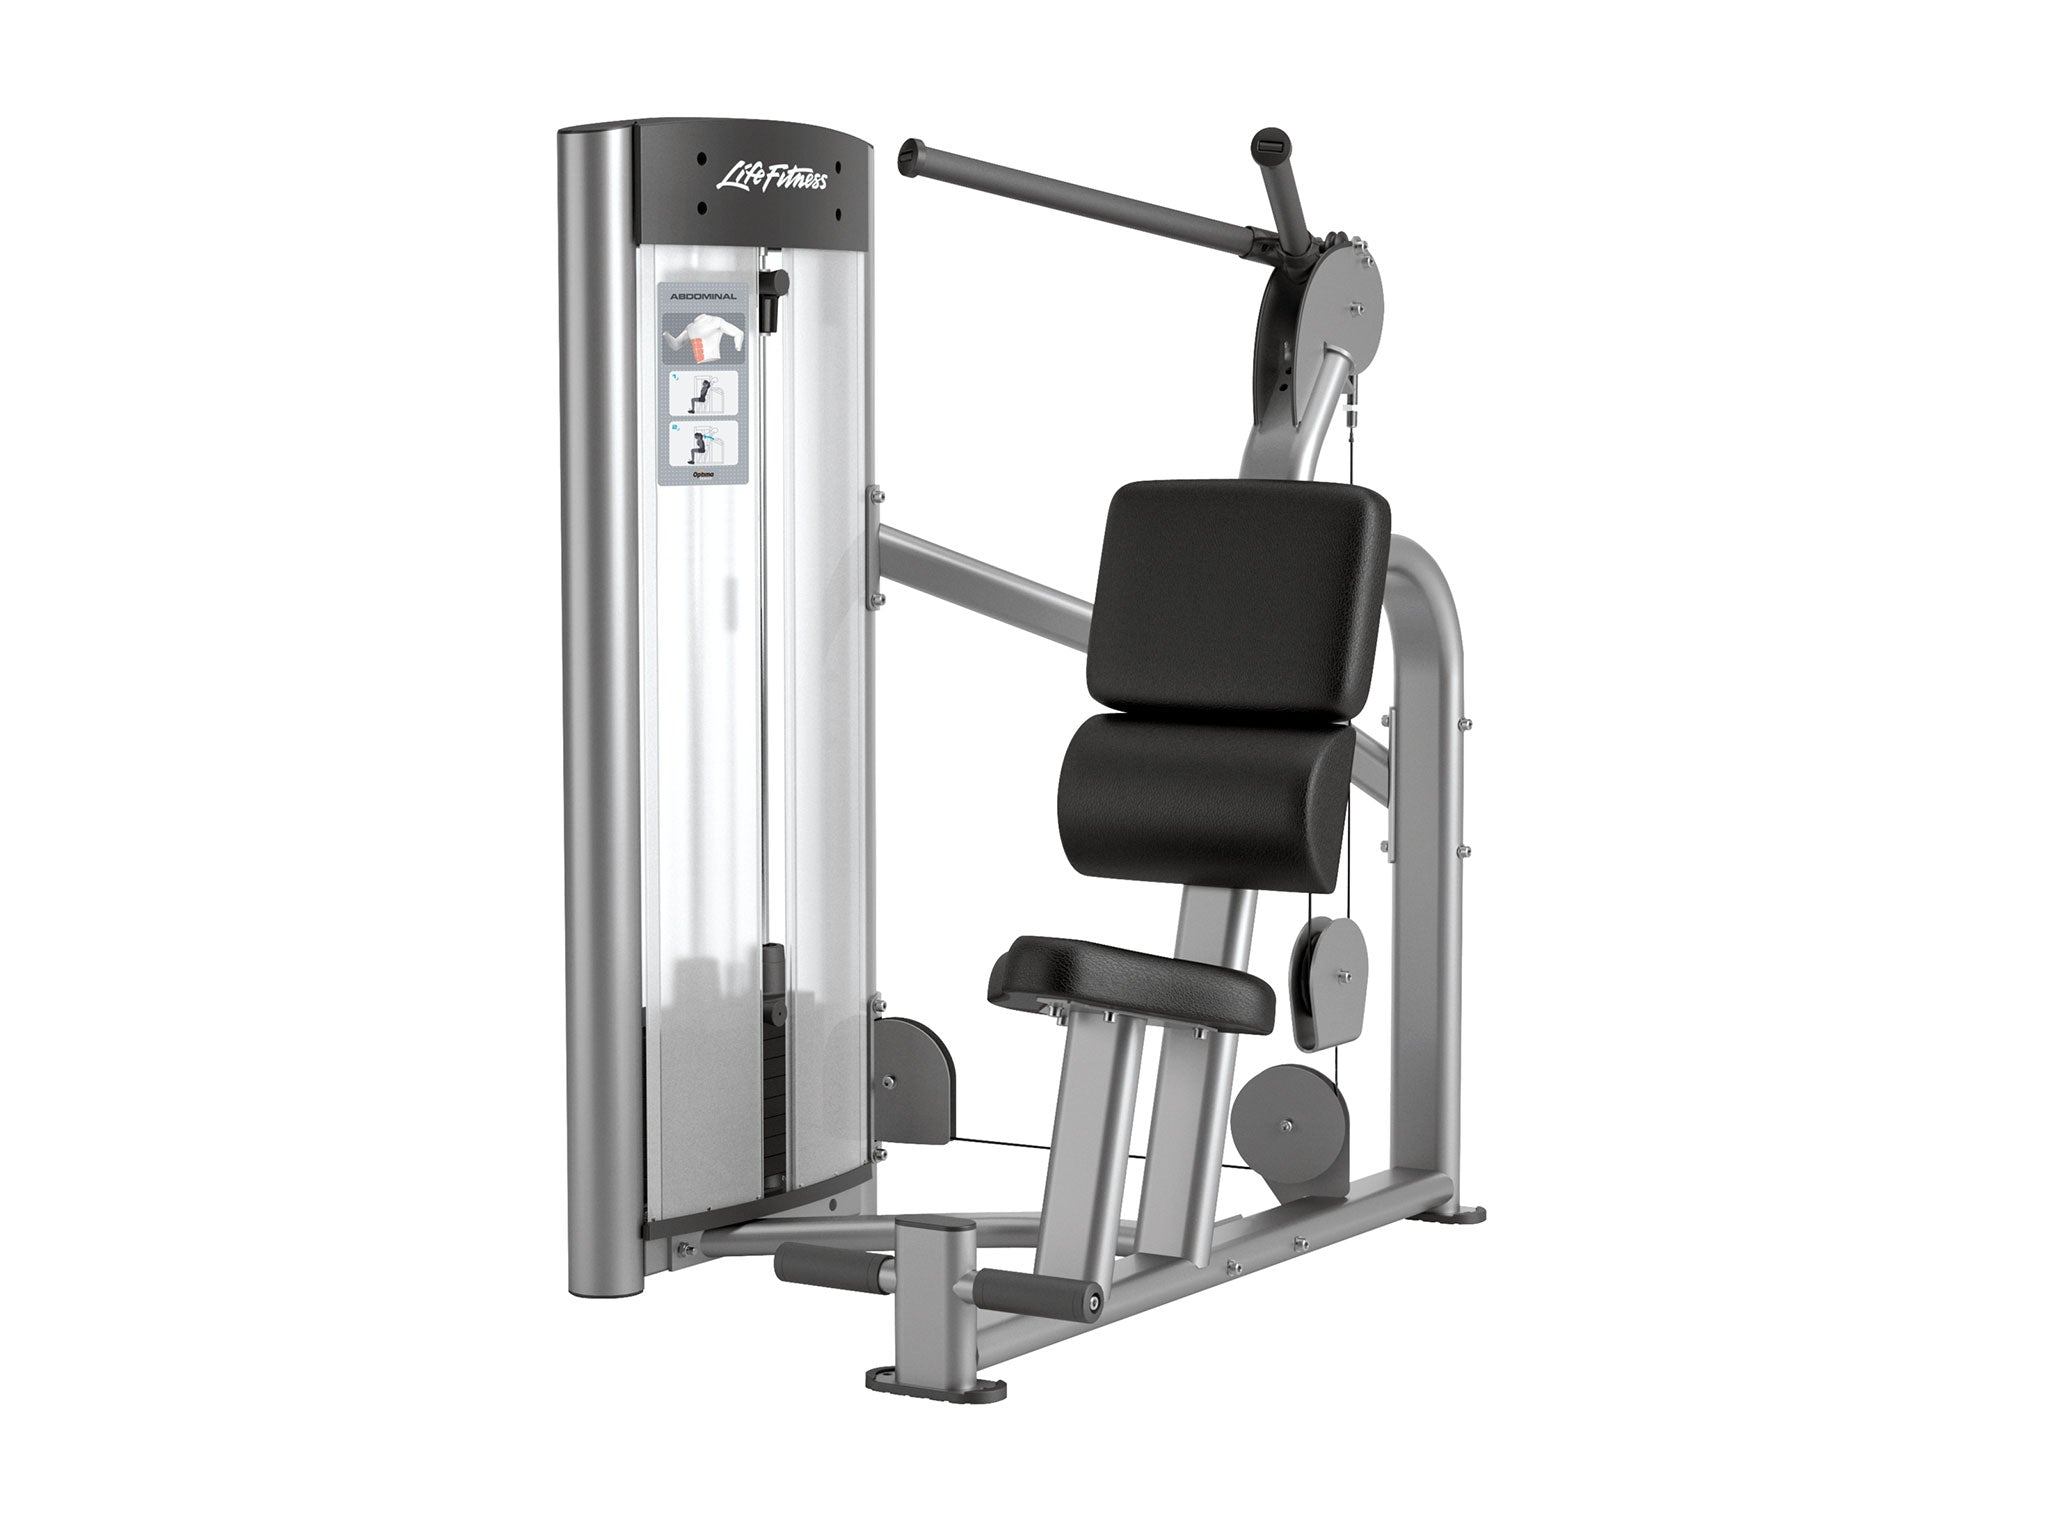 Image of a refurbished Life Fitness Optima Series Abdominal